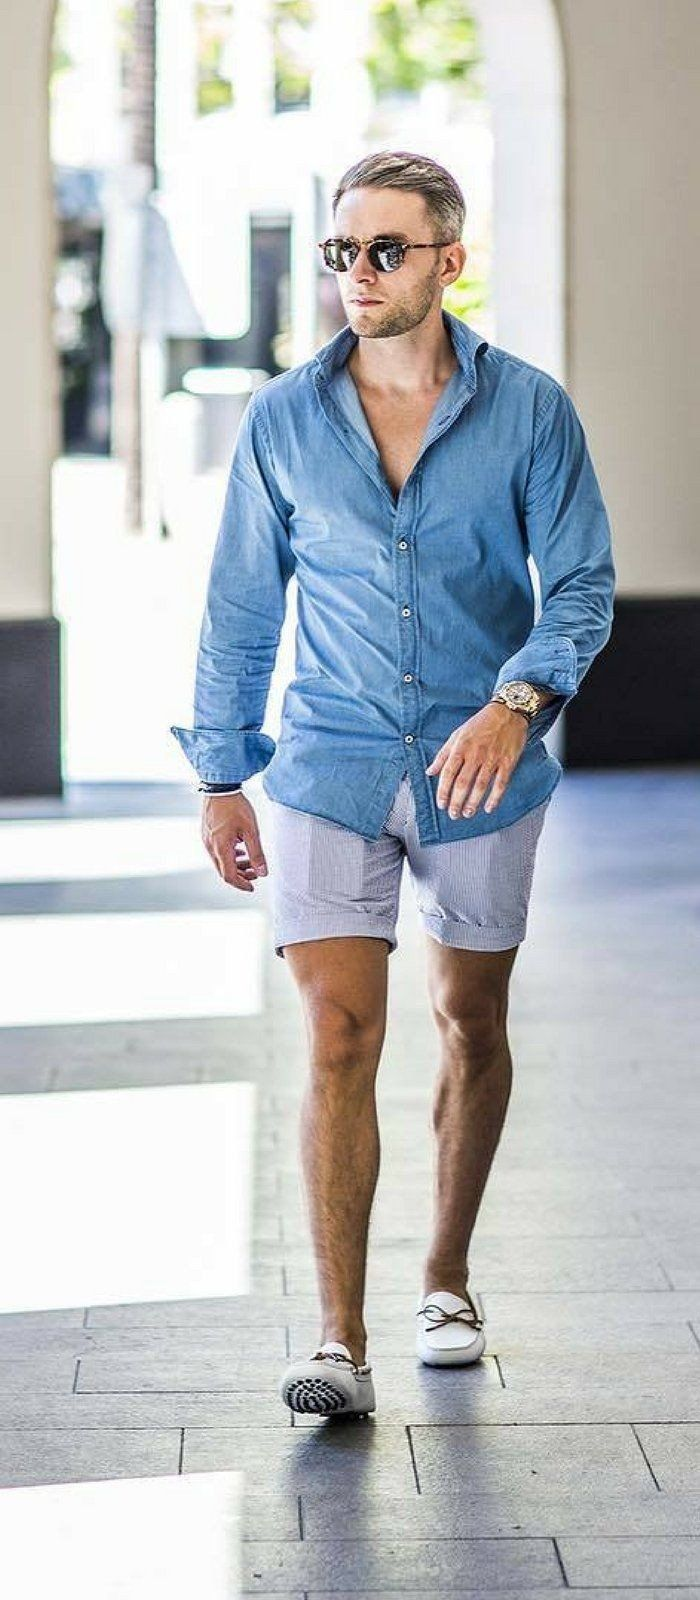 0357fa895588 ... mens fashion 07751. Coolest Summer Outfit Ideas For Men – PS 1983